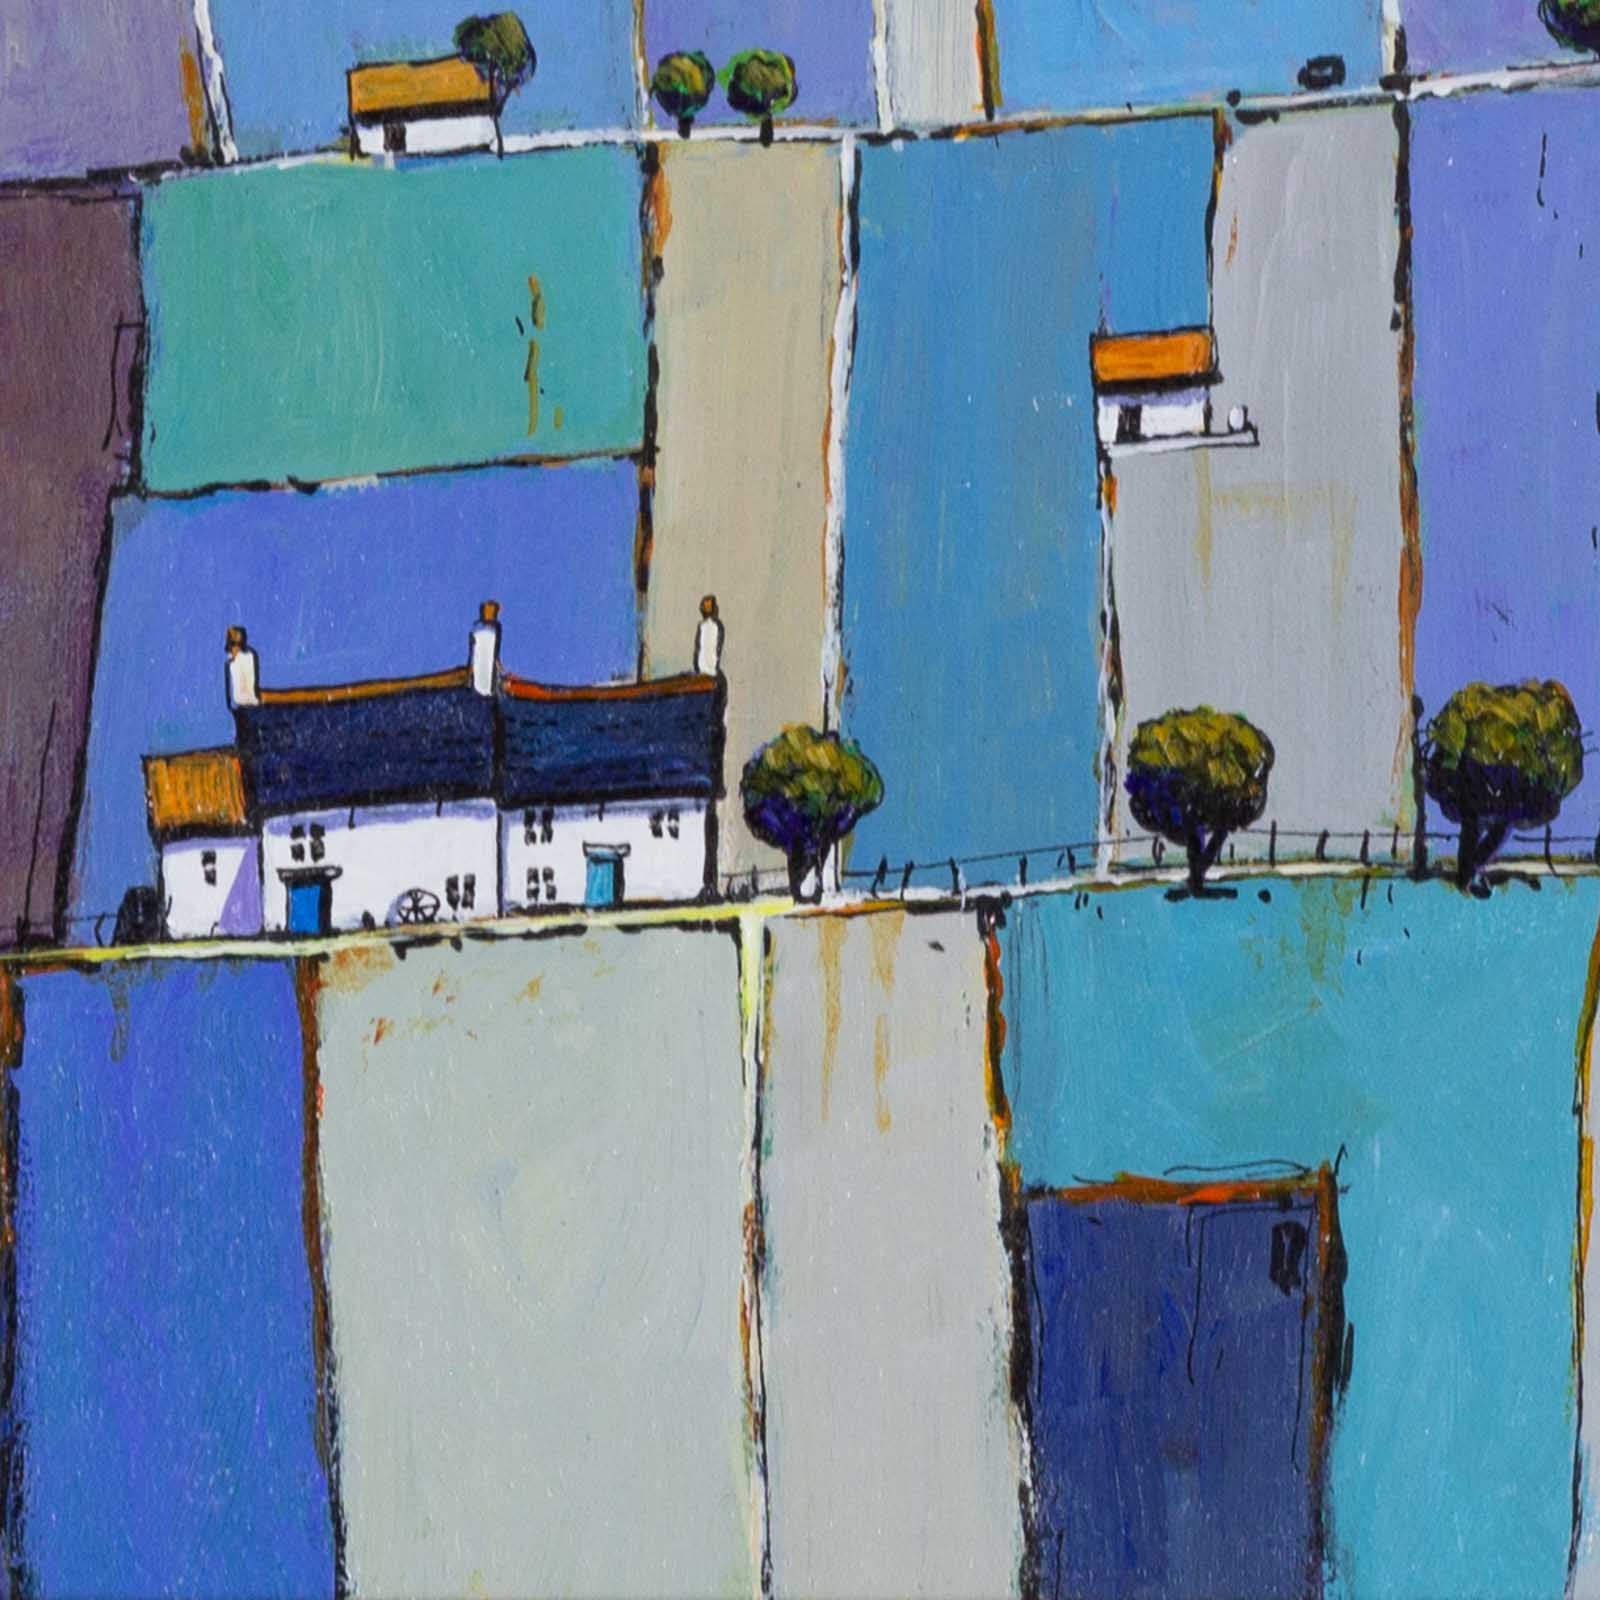 Patchwork of Blue